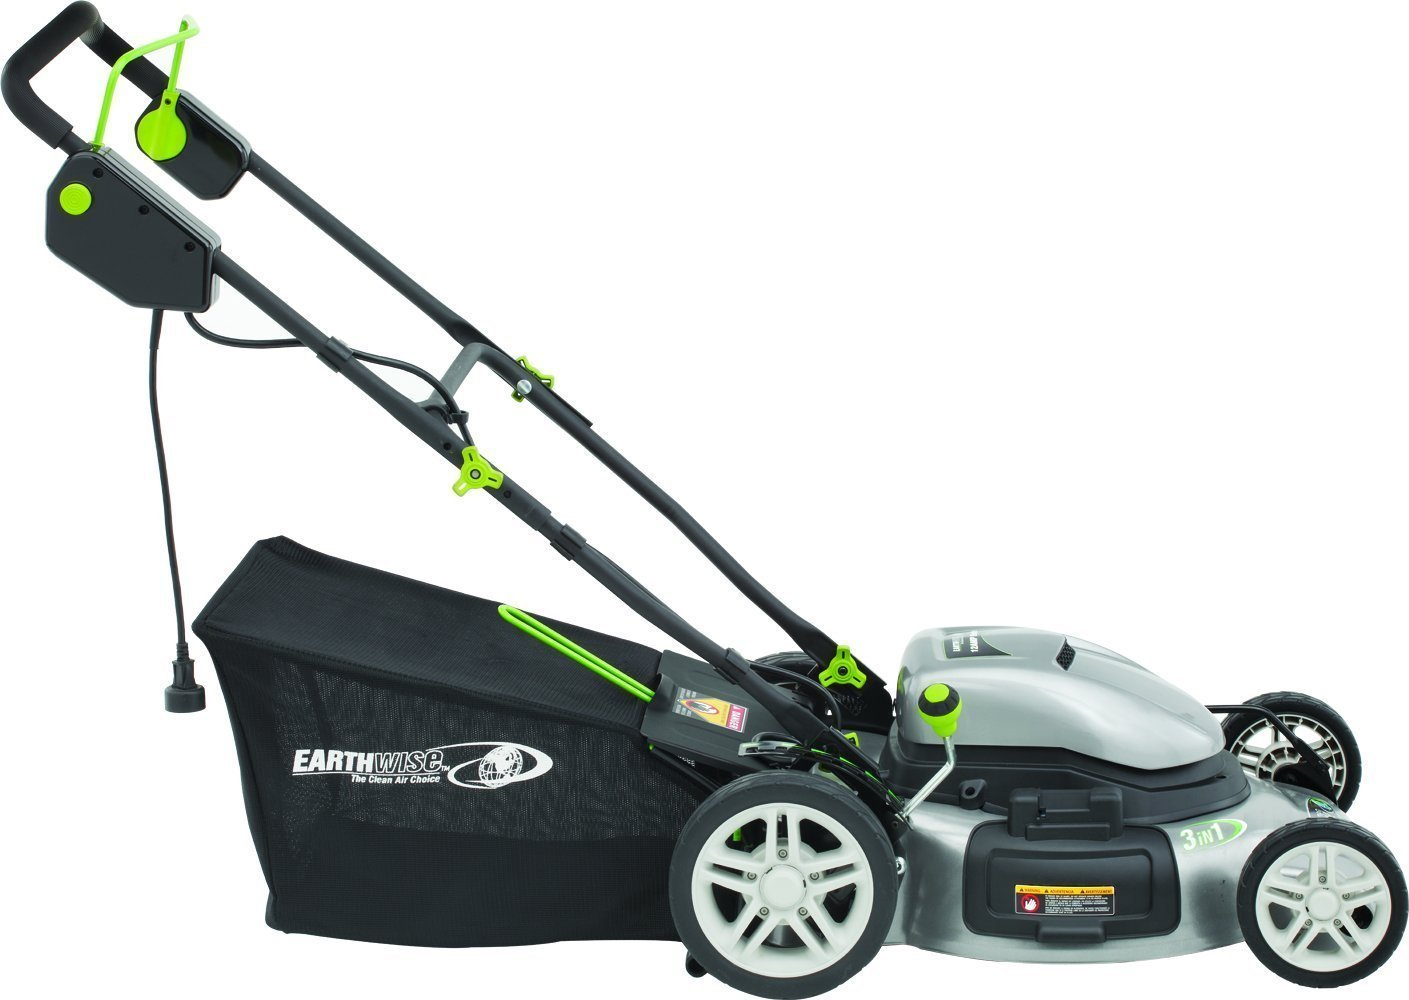 Best Corded Electric Lawn Mower Home Furniture Design